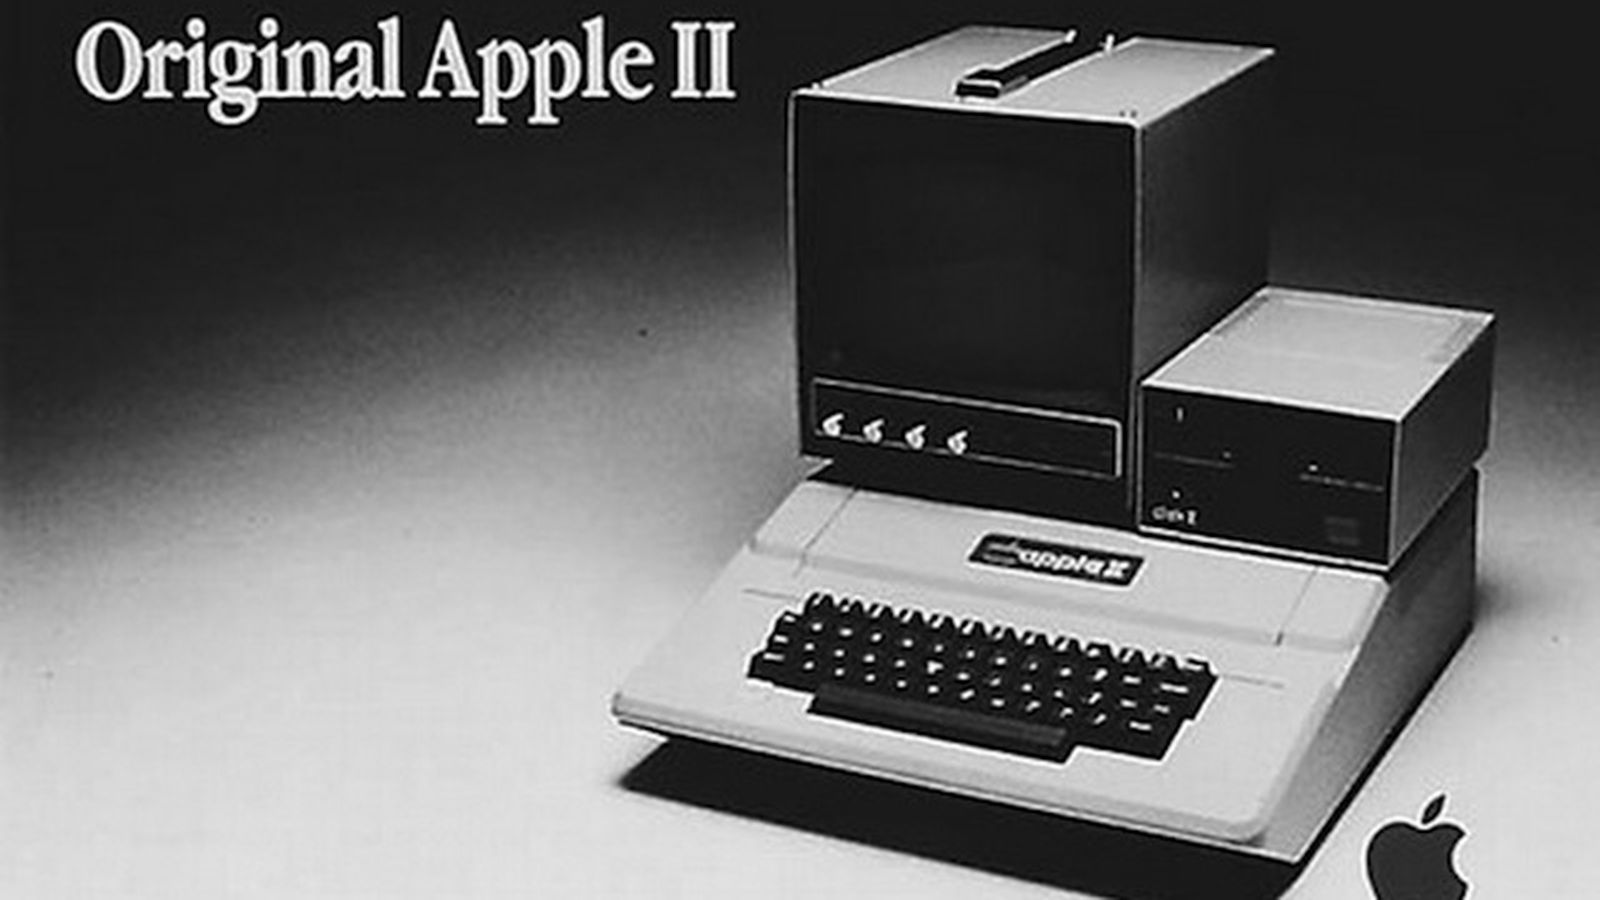 Steve Wozniak describes his ideal PC in 1977 feature on ...